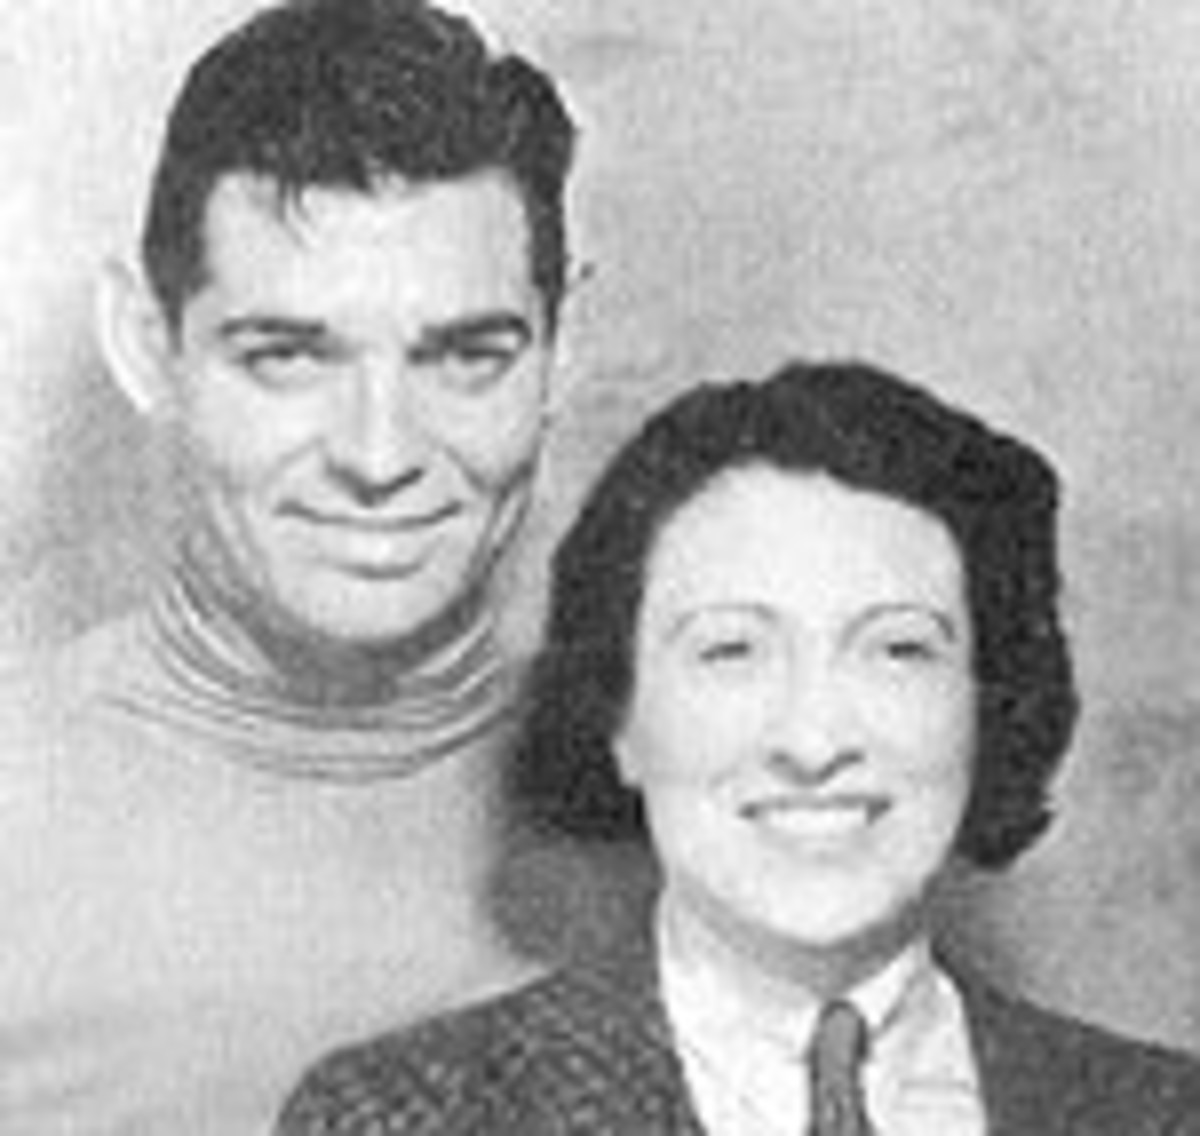 Clark and Ria in 1930